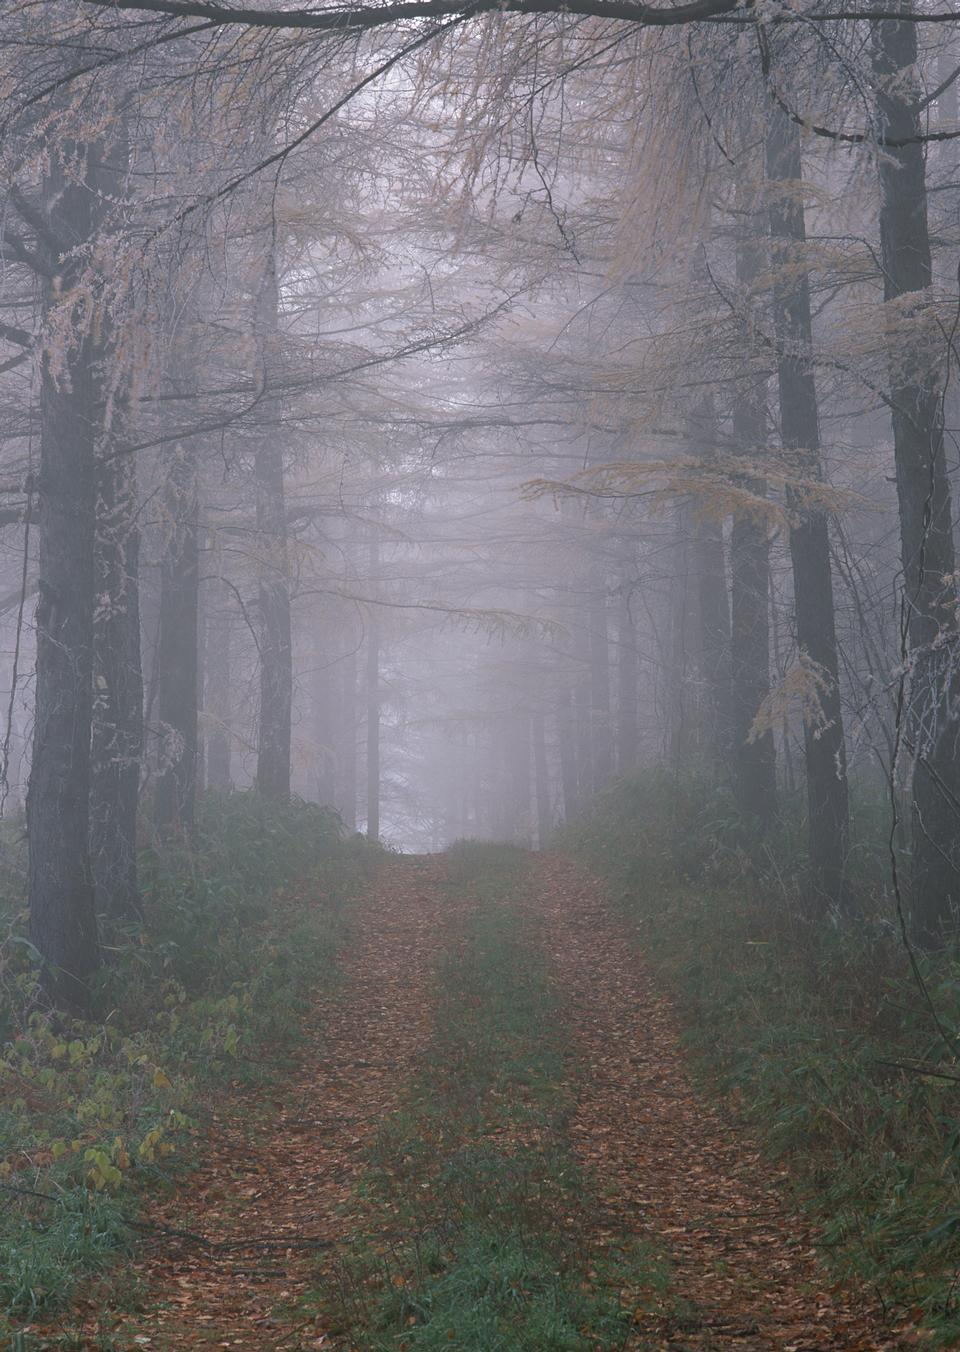 Misty and foggy road in autumn beech landscape